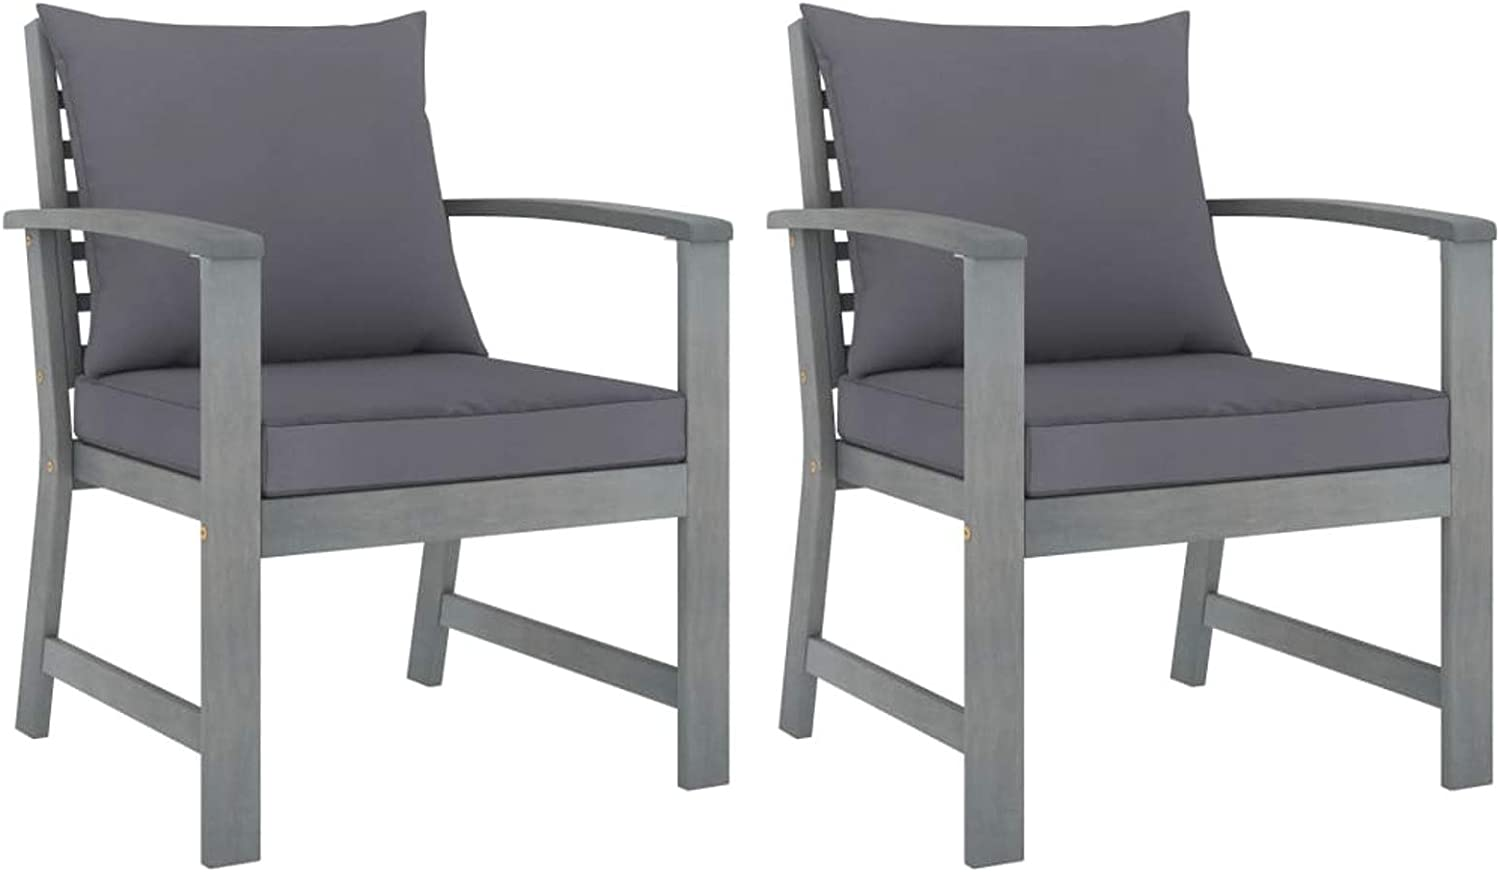 Tidyard 2 Piece Garden Chairs with Cushion Acacia Wood Armchair Wooden Outdoor Dining Chair Patio Balcony Backyard Outdoor Furniture 23.8 x 23.8 x 31.9 Inches (W x D x H)